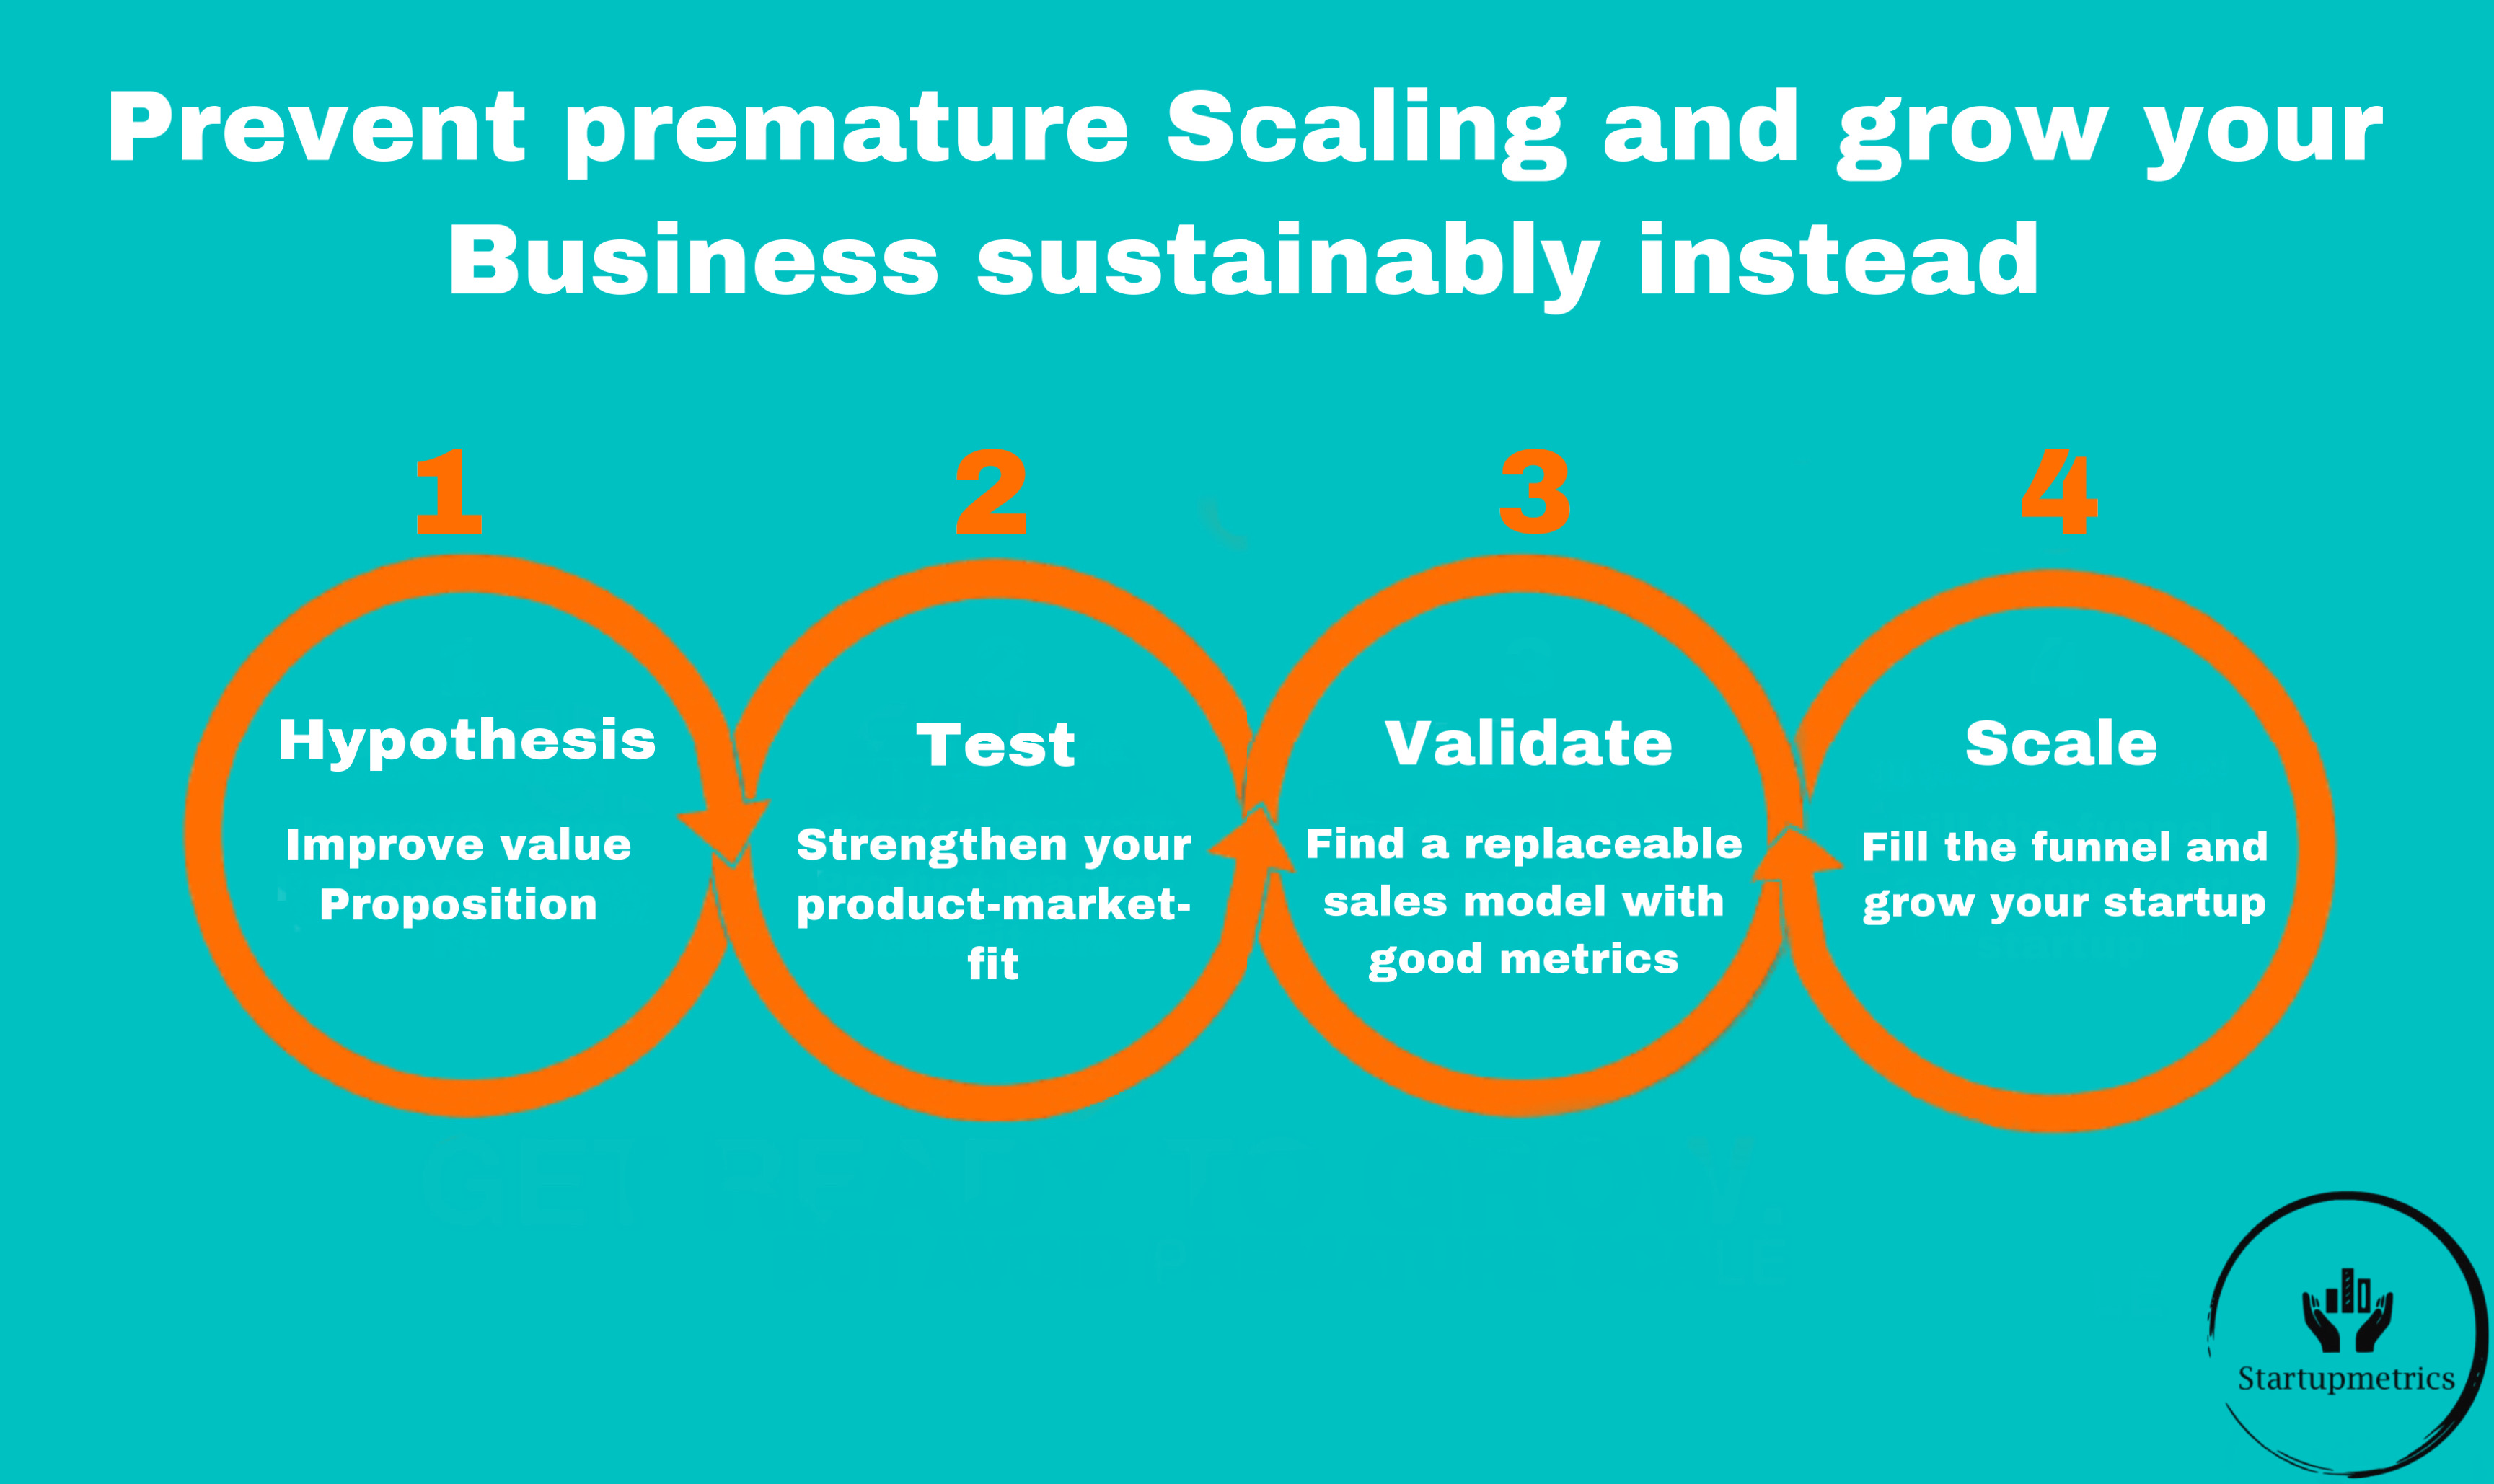 Prevent your Startup from premature Scaling to grow your Business sustainably